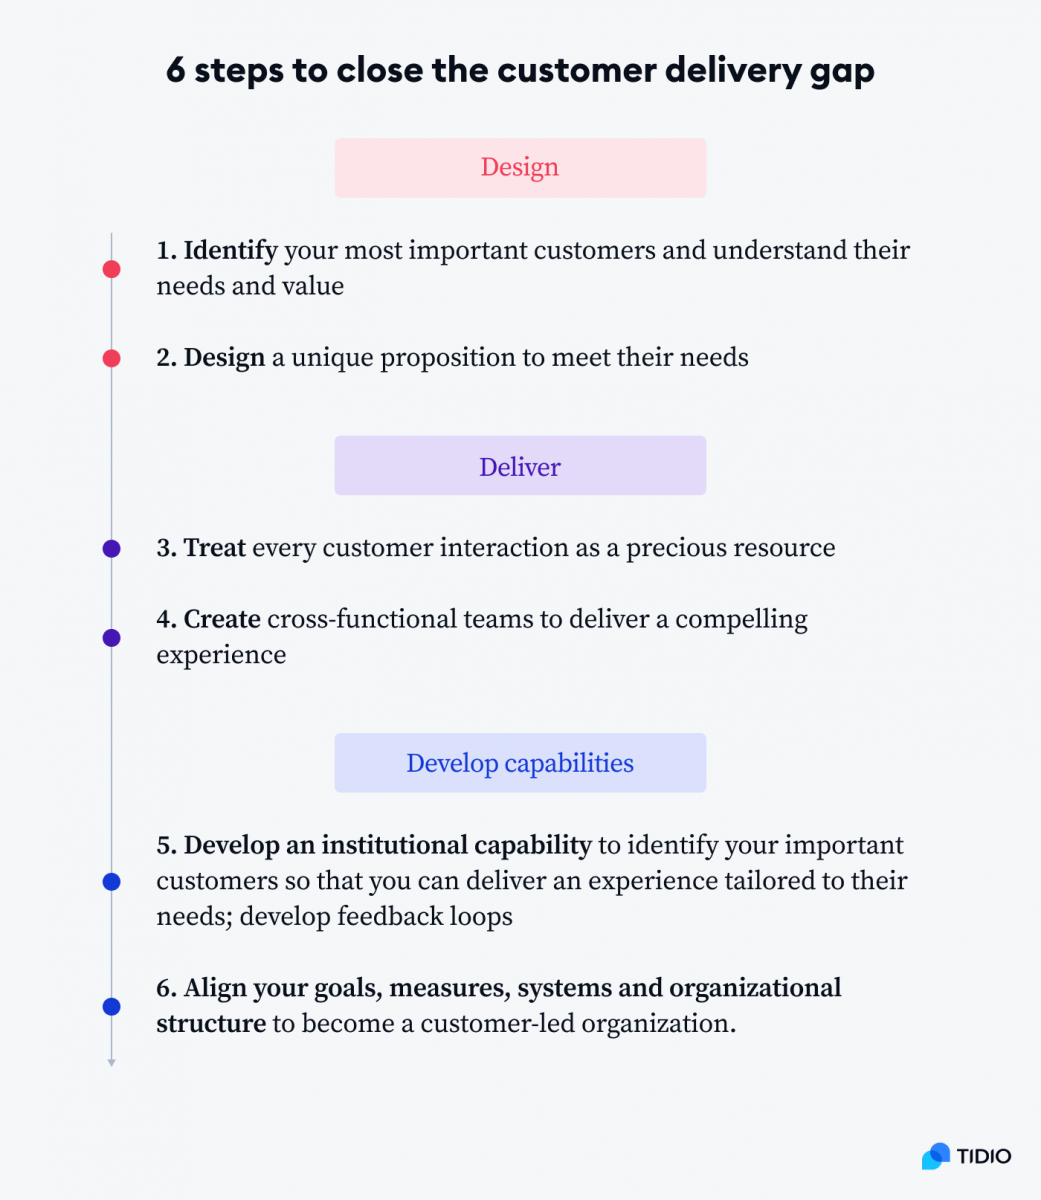 Infographic with 6 steps to close the customer delivery gap